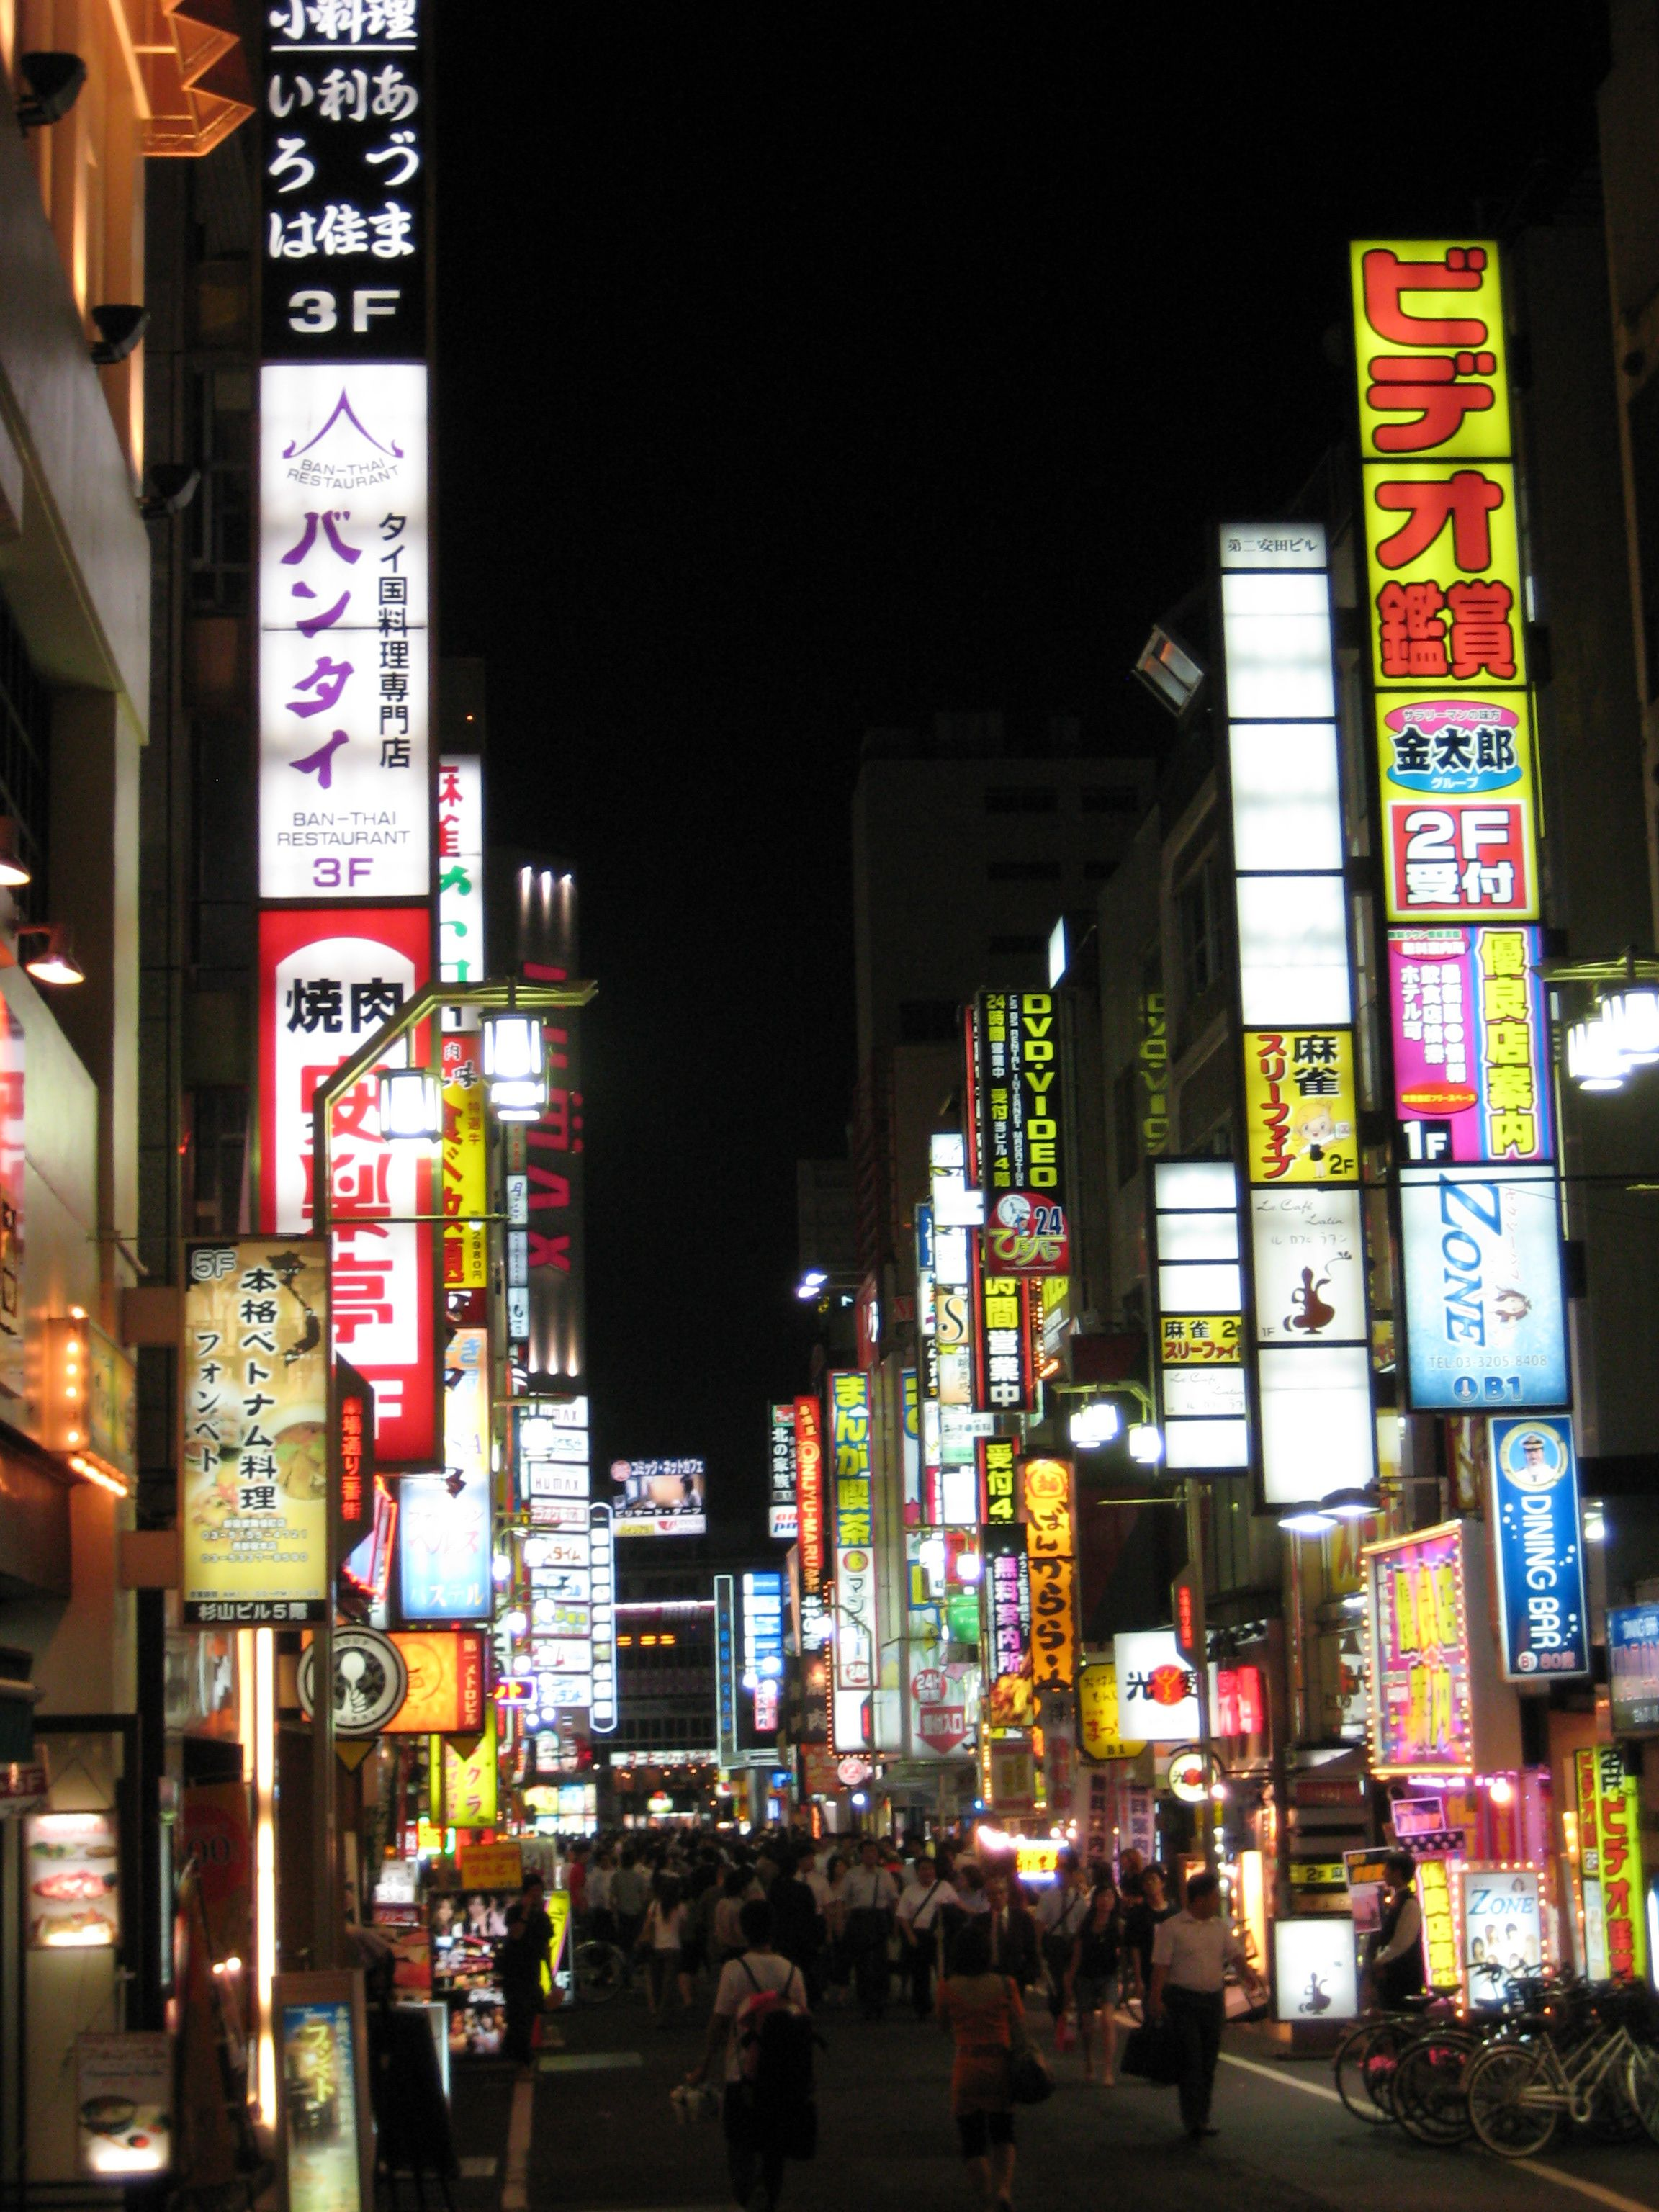 Tokyo S Late Night Bars World S Largest Fish Market Sushi For